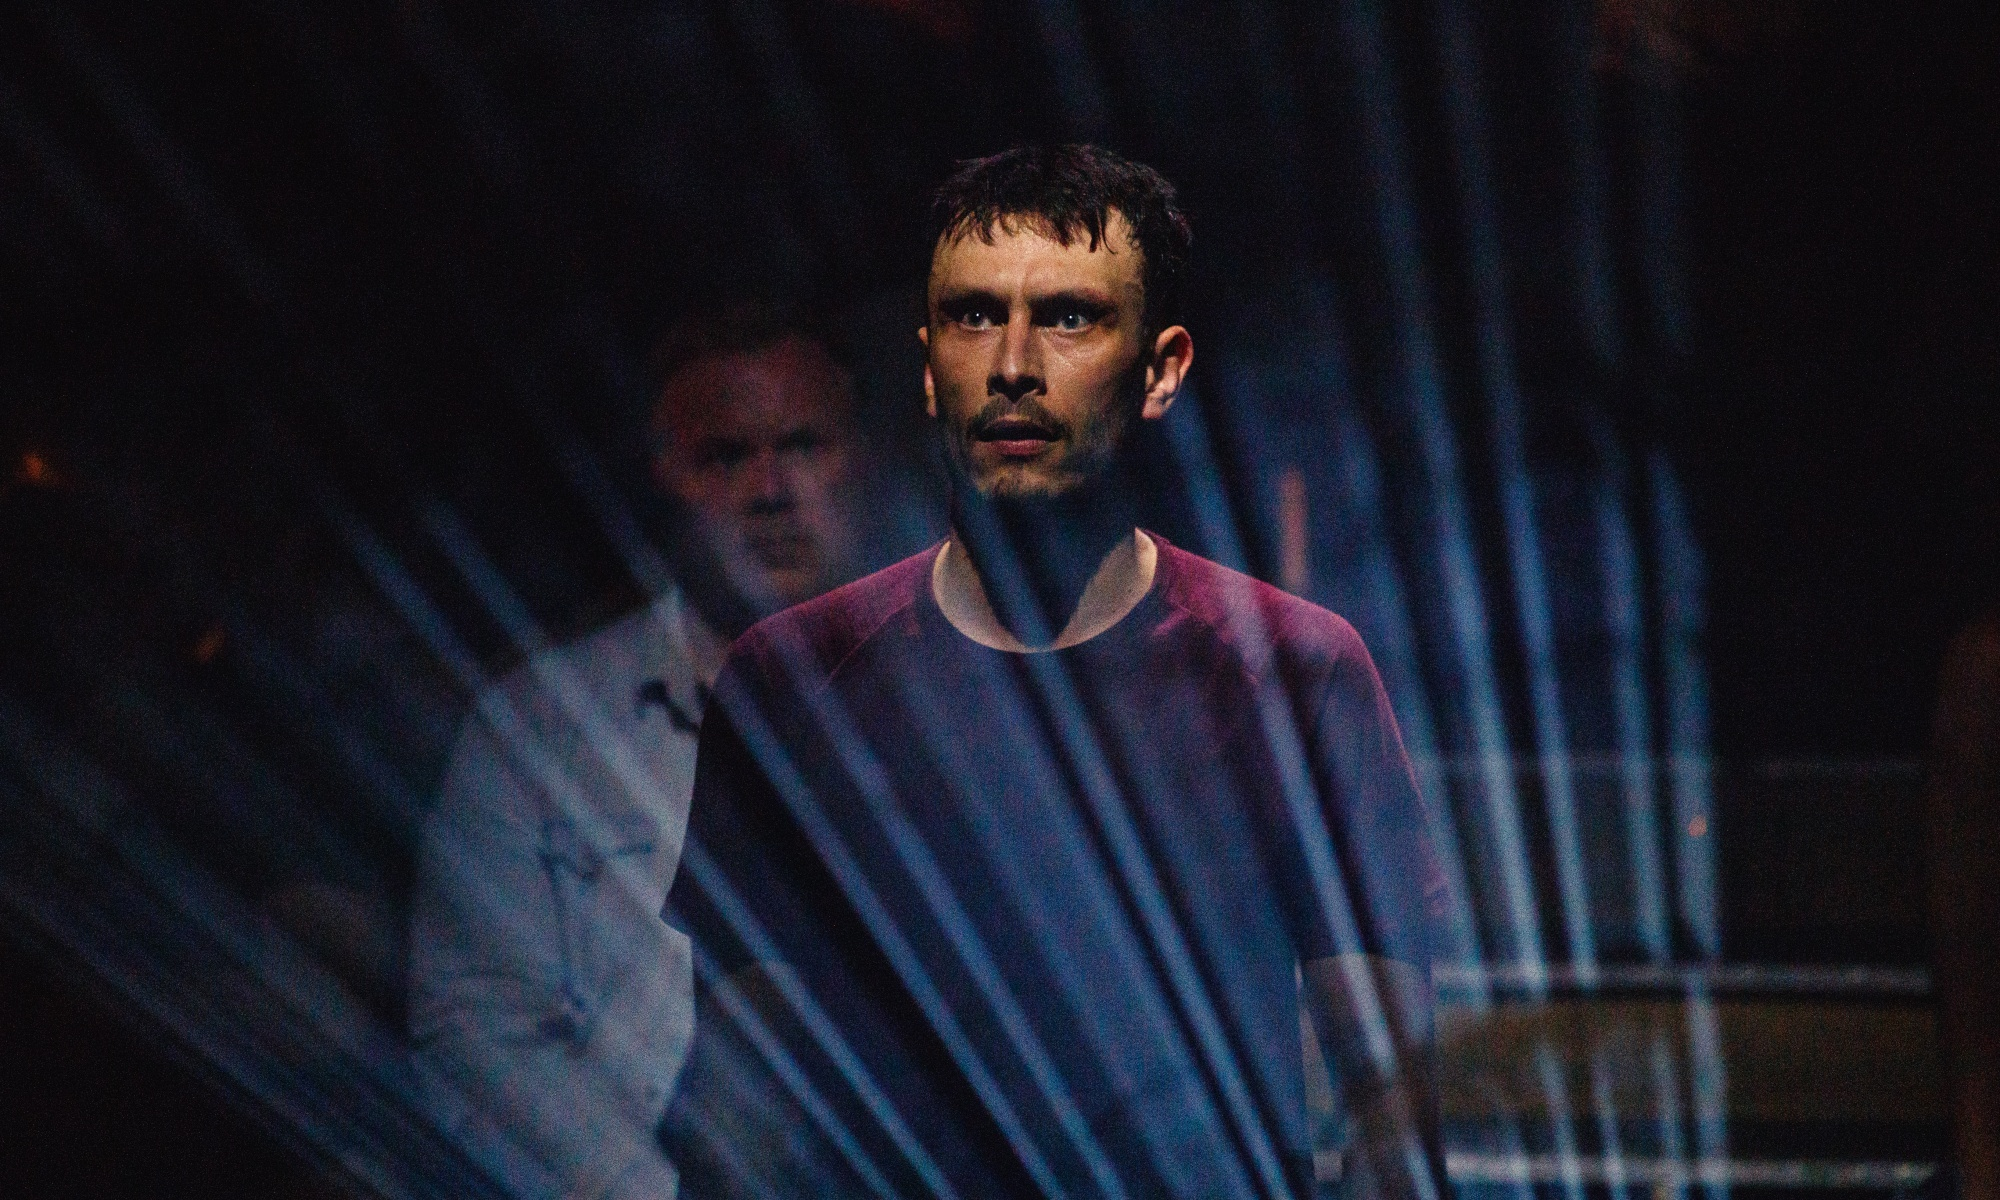 A man in a red shirt stares into the distance, with a look of fear about him. His face is lit up with a blue light from below him.